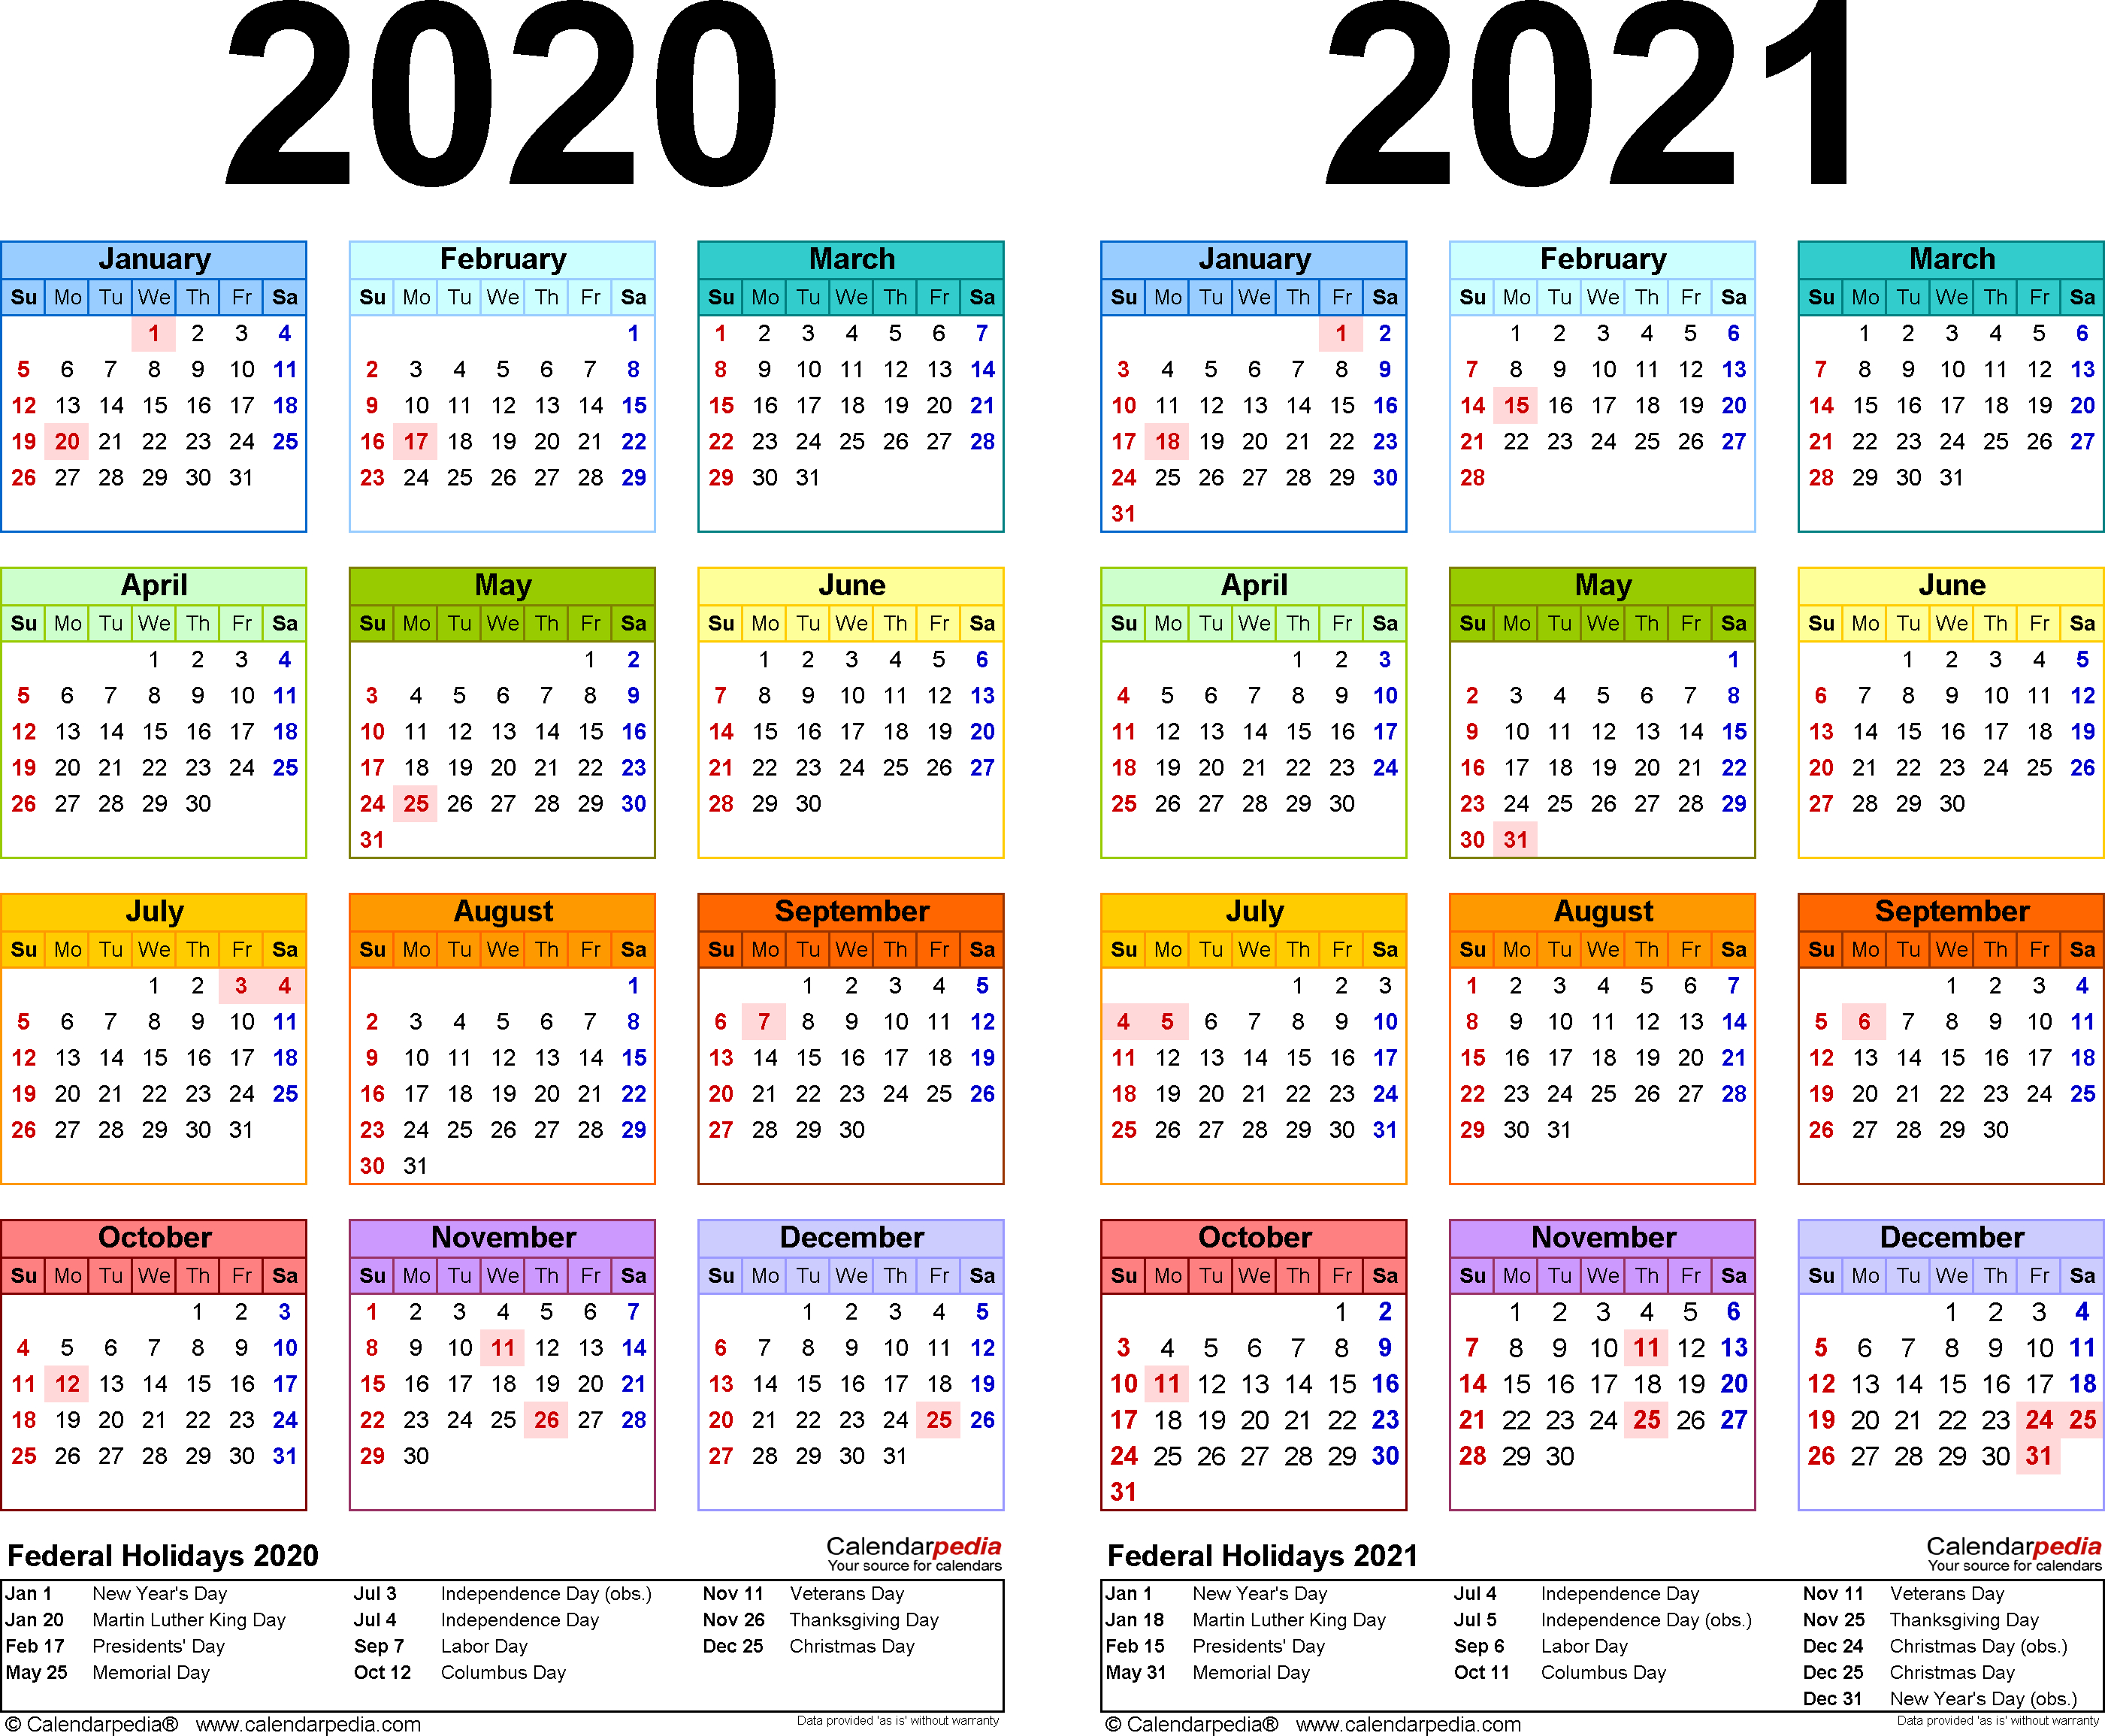 2020-2021 Calendar - Free Printable Two-Year Excel Calendars throughout 10 Years Calendar From 2020